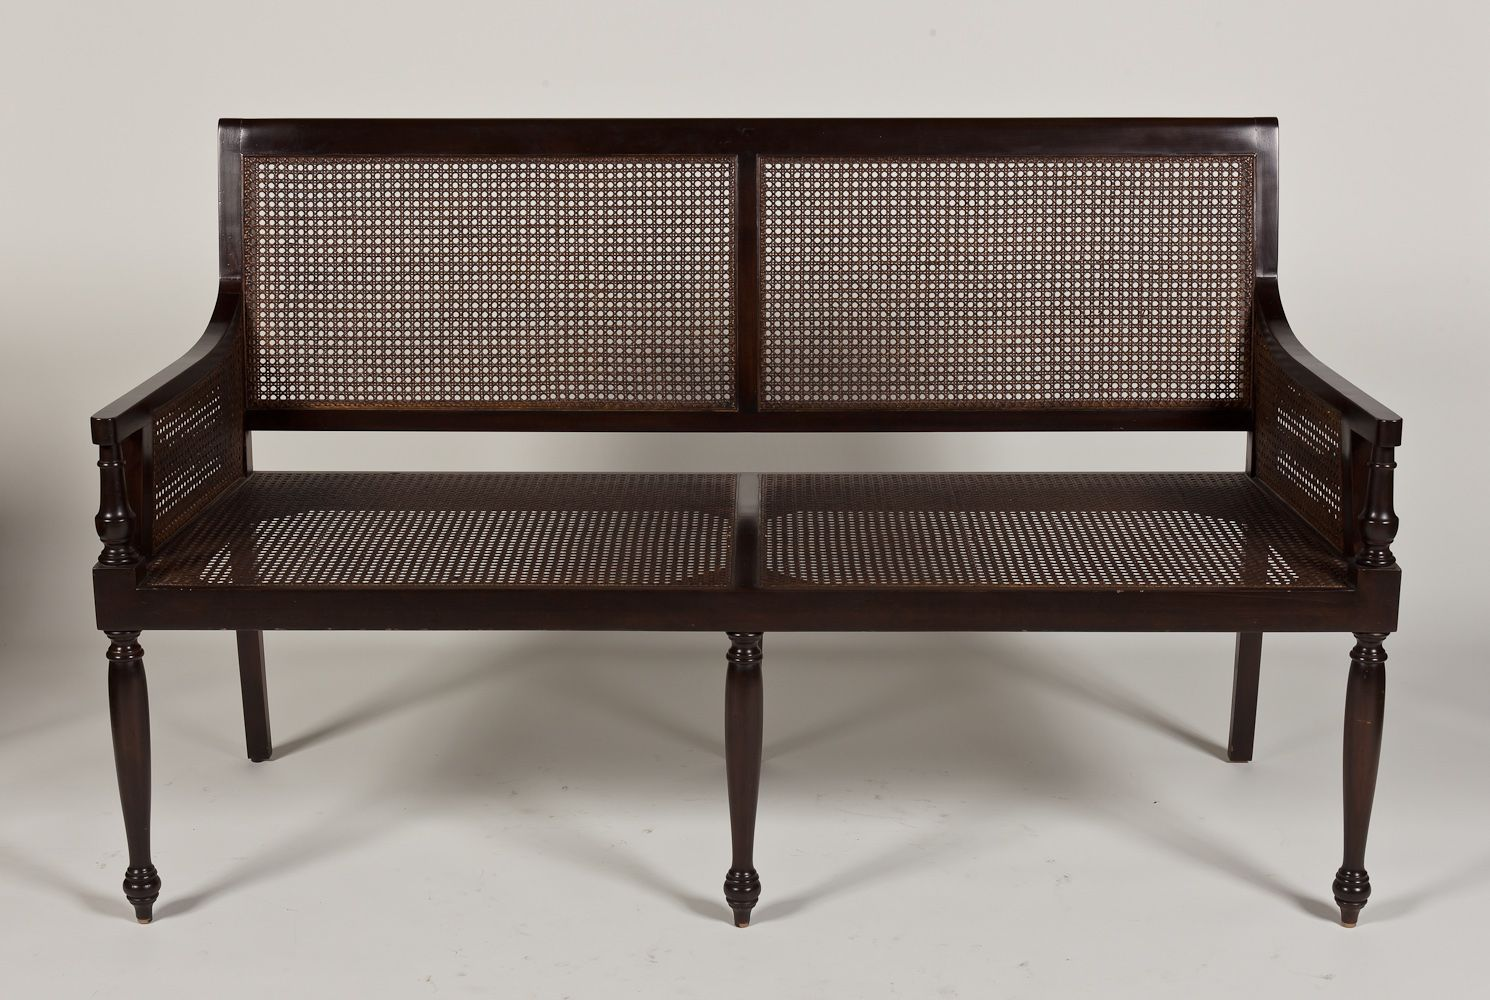 I Think Our Room Needs This Bench Now To Match Our Cane Bed Decor Pinterest Room